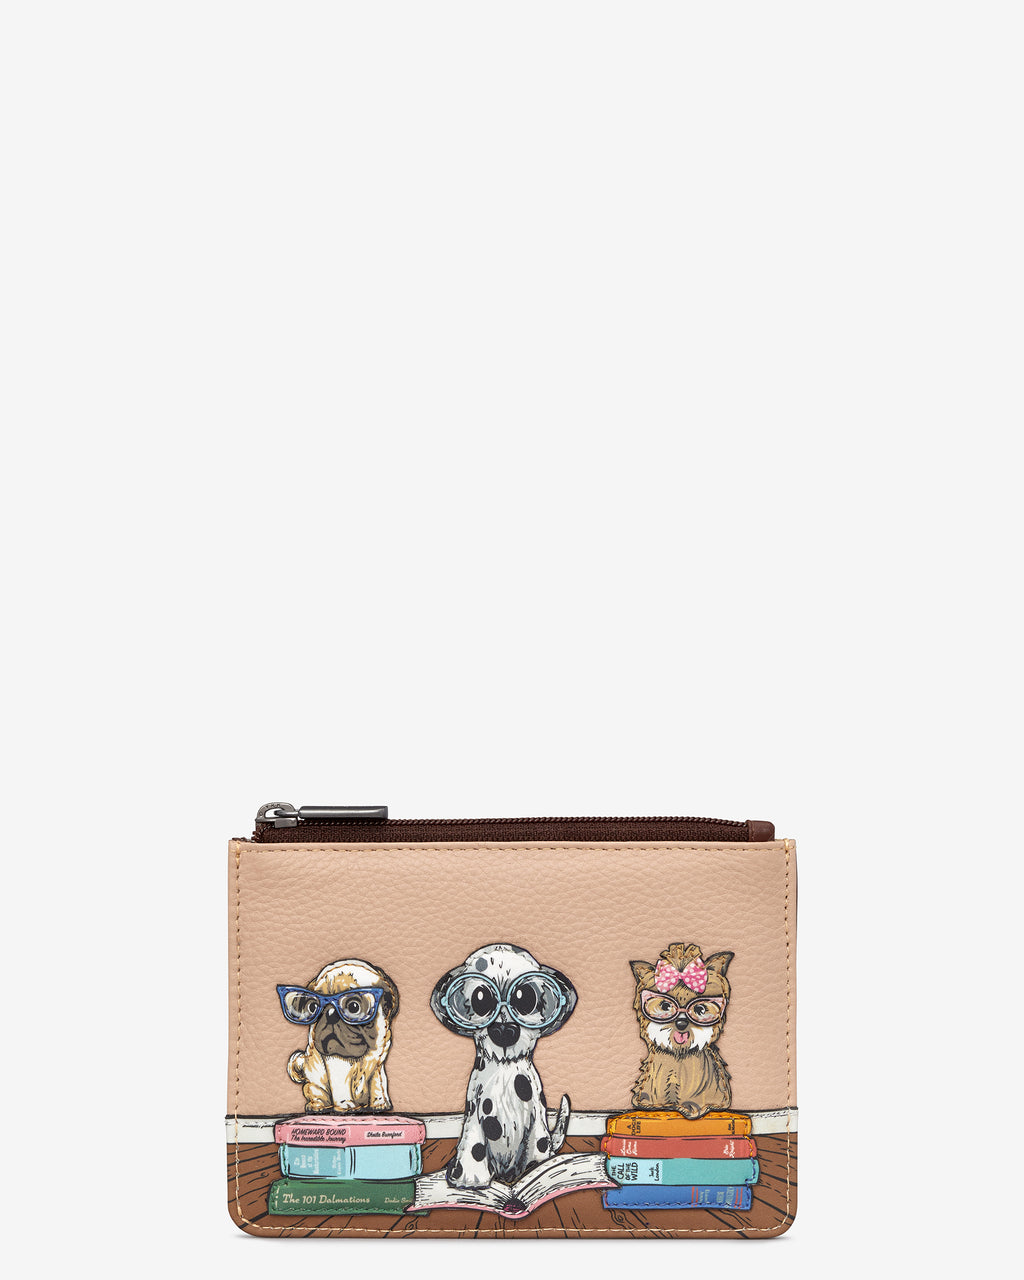 Bookhound Gang Zip Top Leather Purse